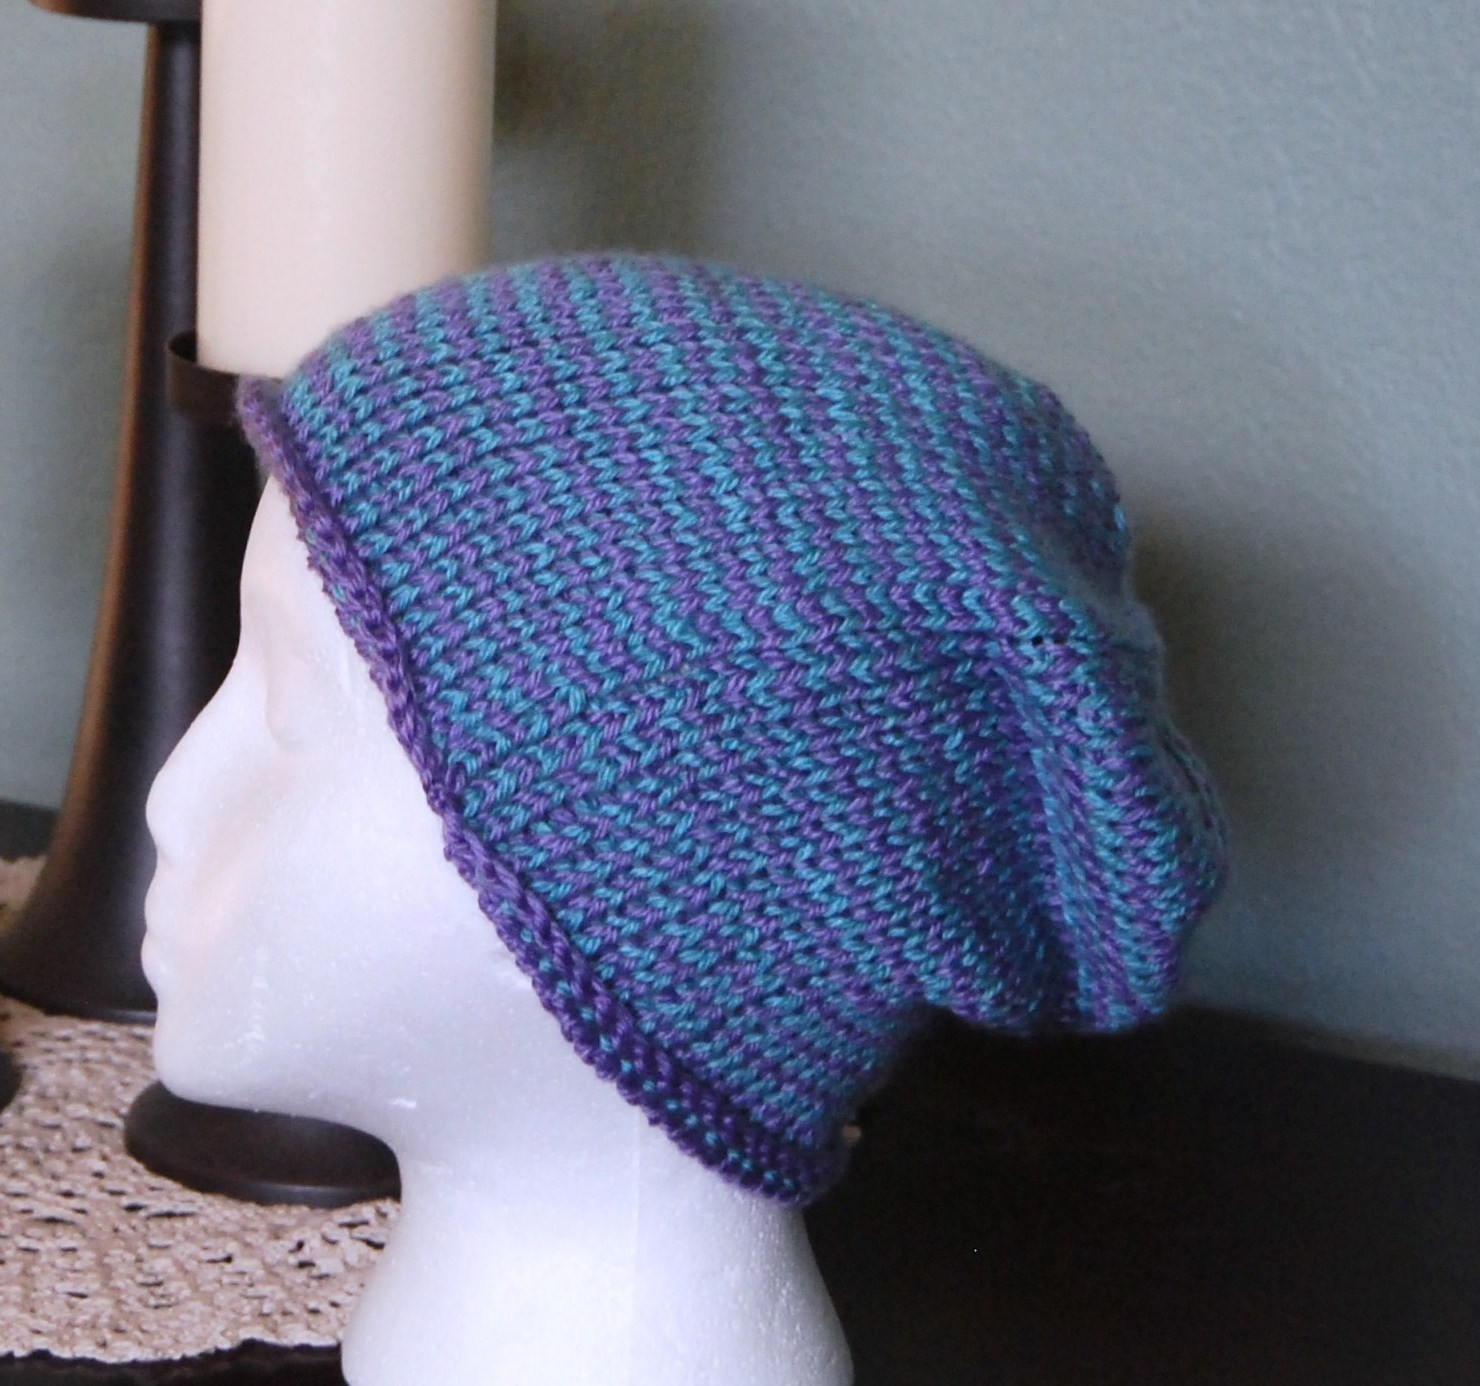 Different Knitting Stitches For Hats : The Laughing Willow: Seaming Tunisian knit stitch and a free pattern!